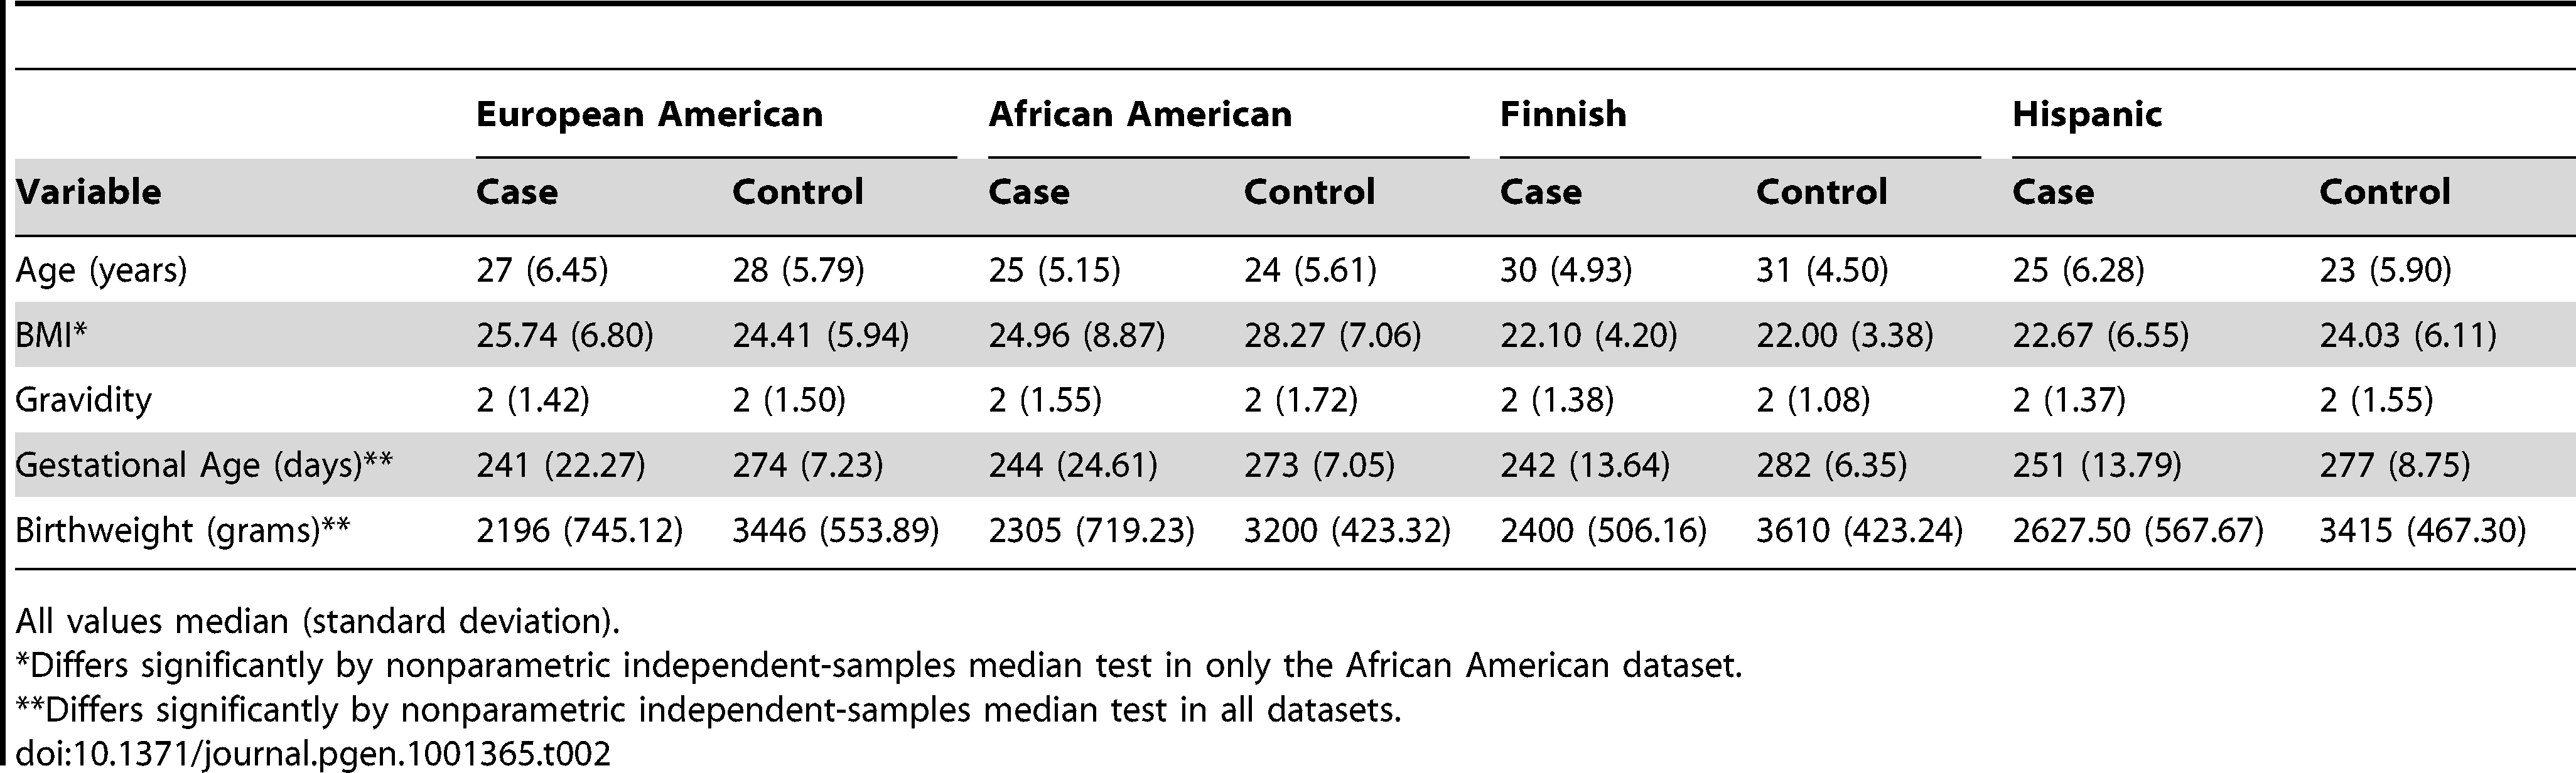 Demographic profile of study populations.